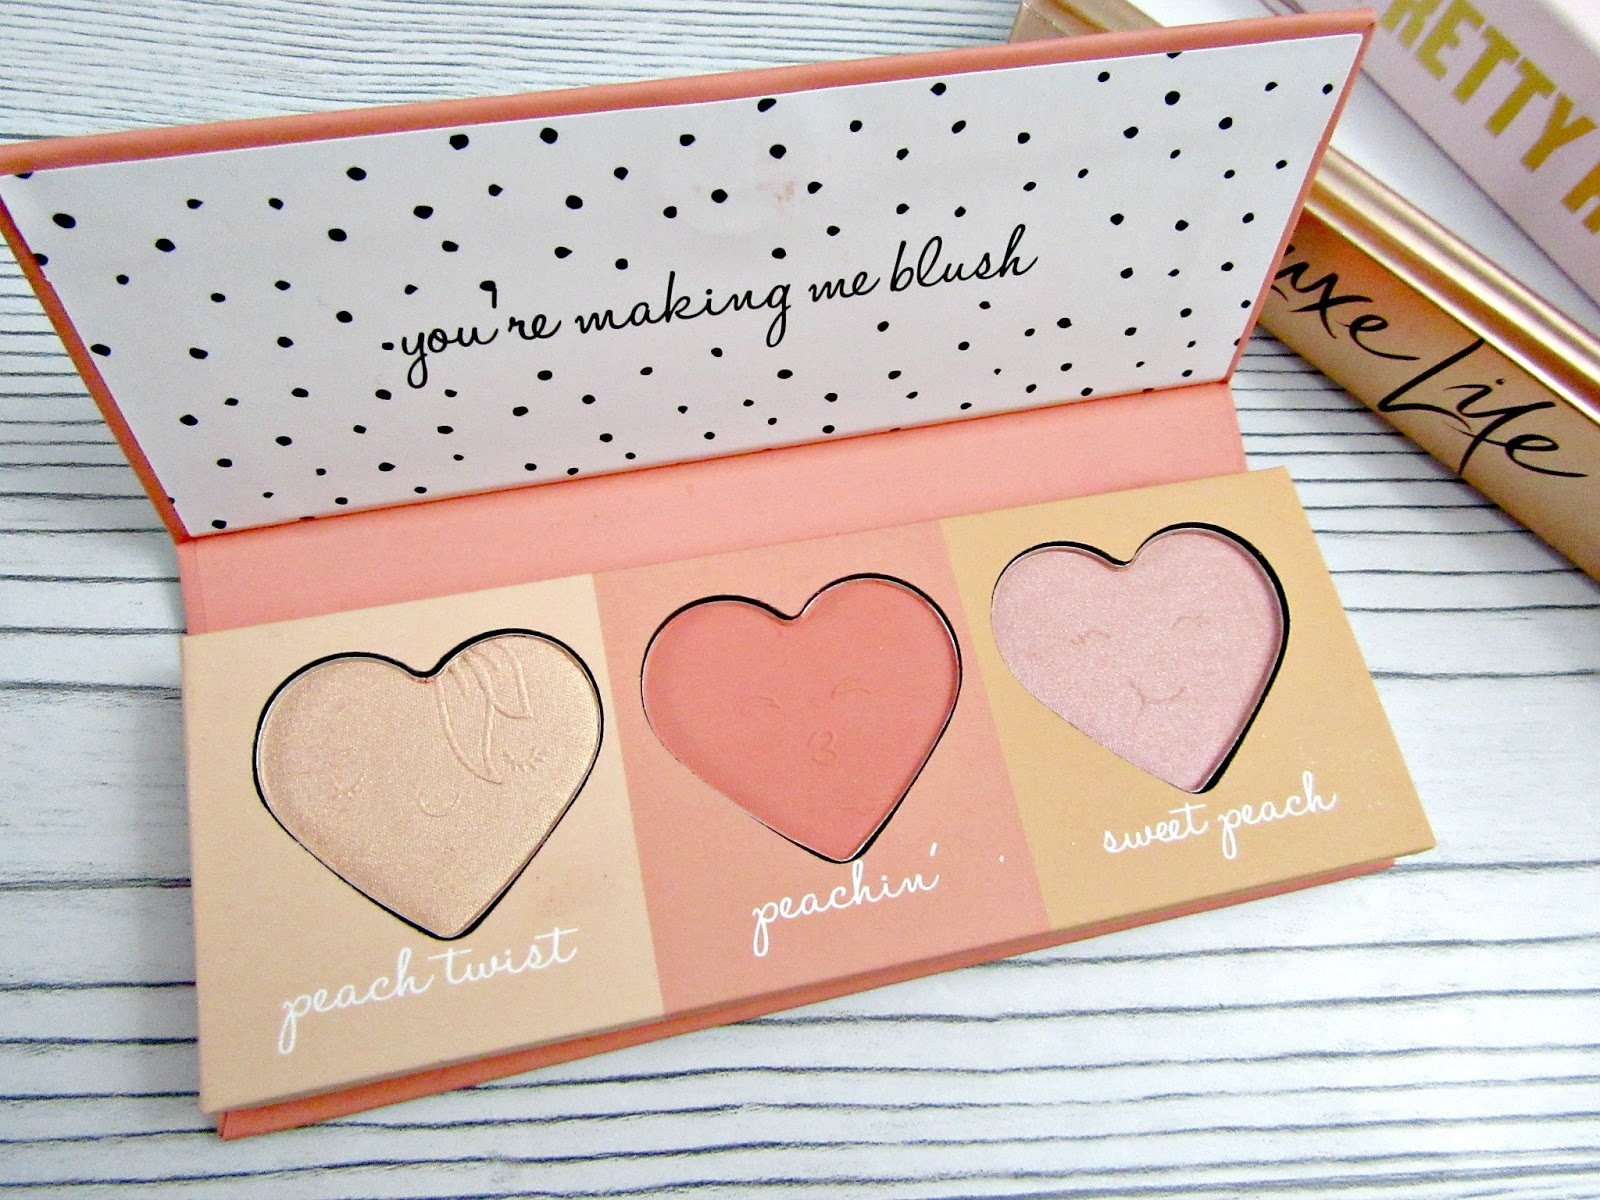 Primark peachy blush and highlight palette